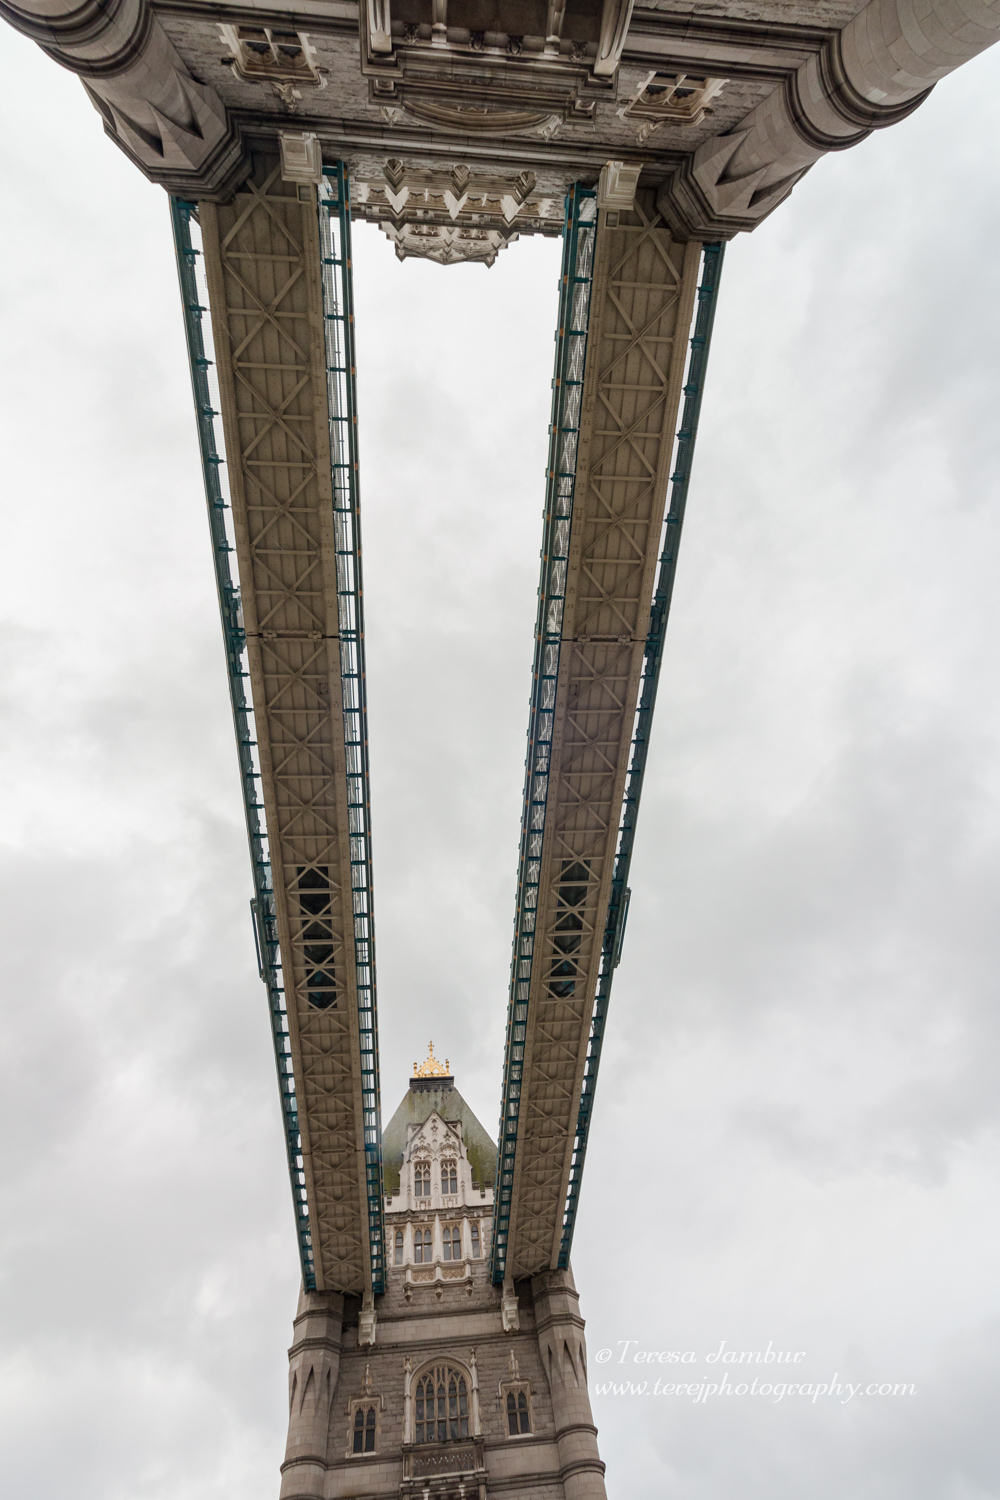 View of Tower Bridge through the open sunroof